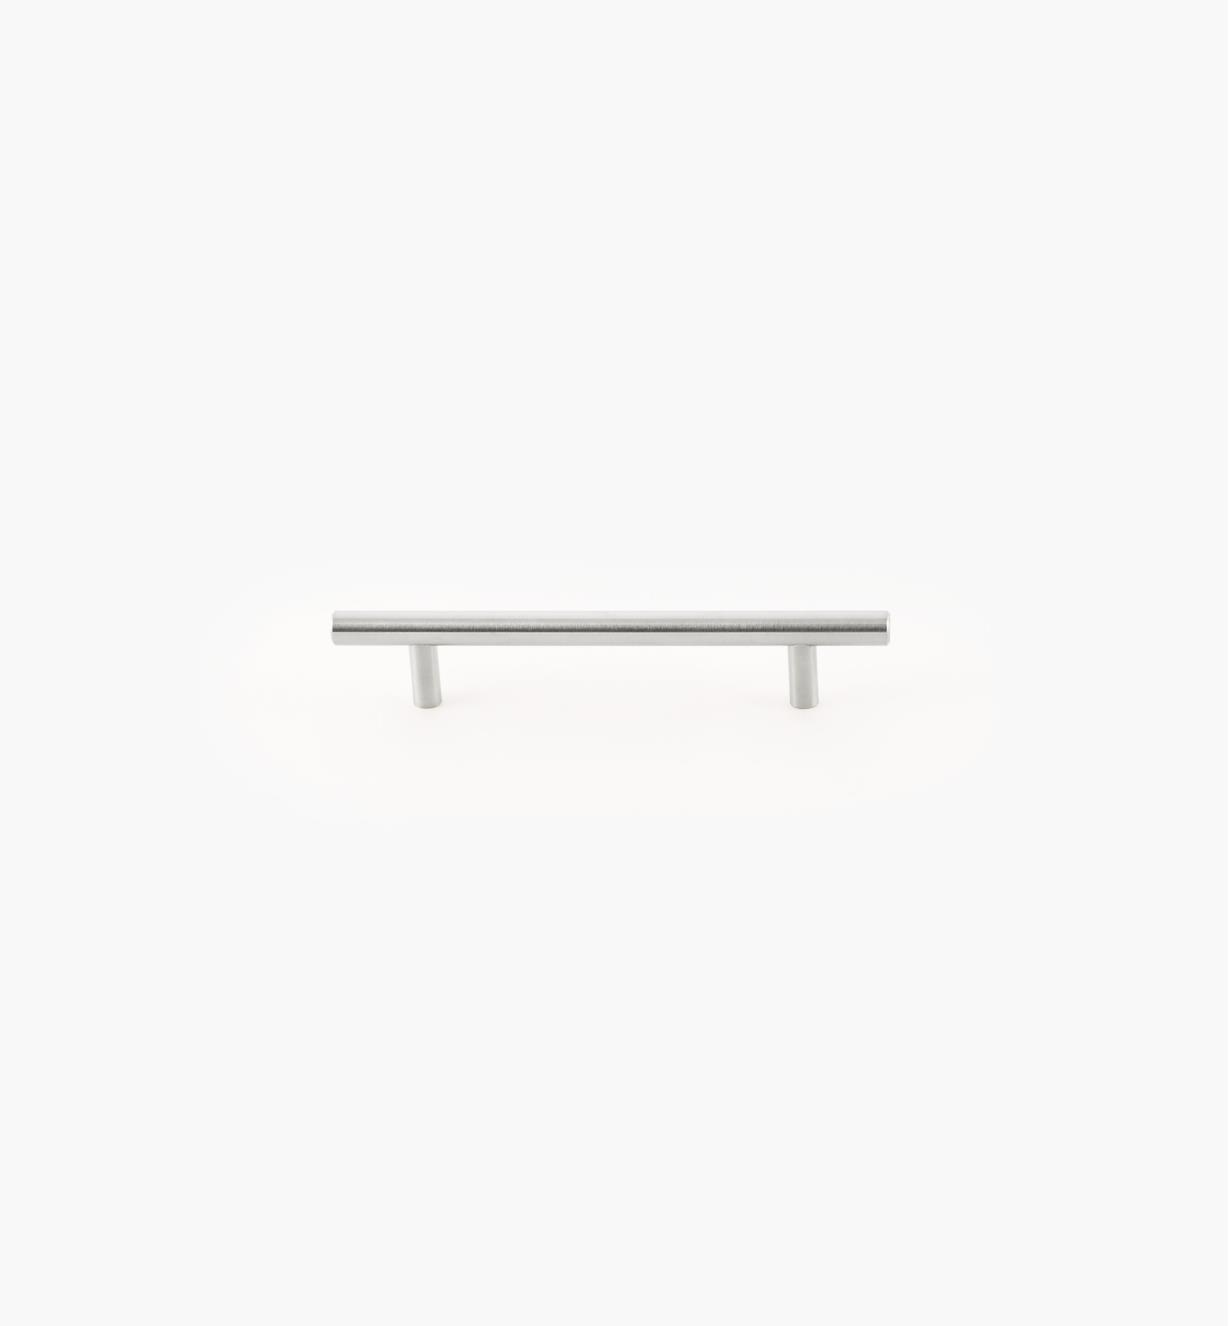 02A1472 - Bar Stainless Steel 128mm (187mm) Pull, each